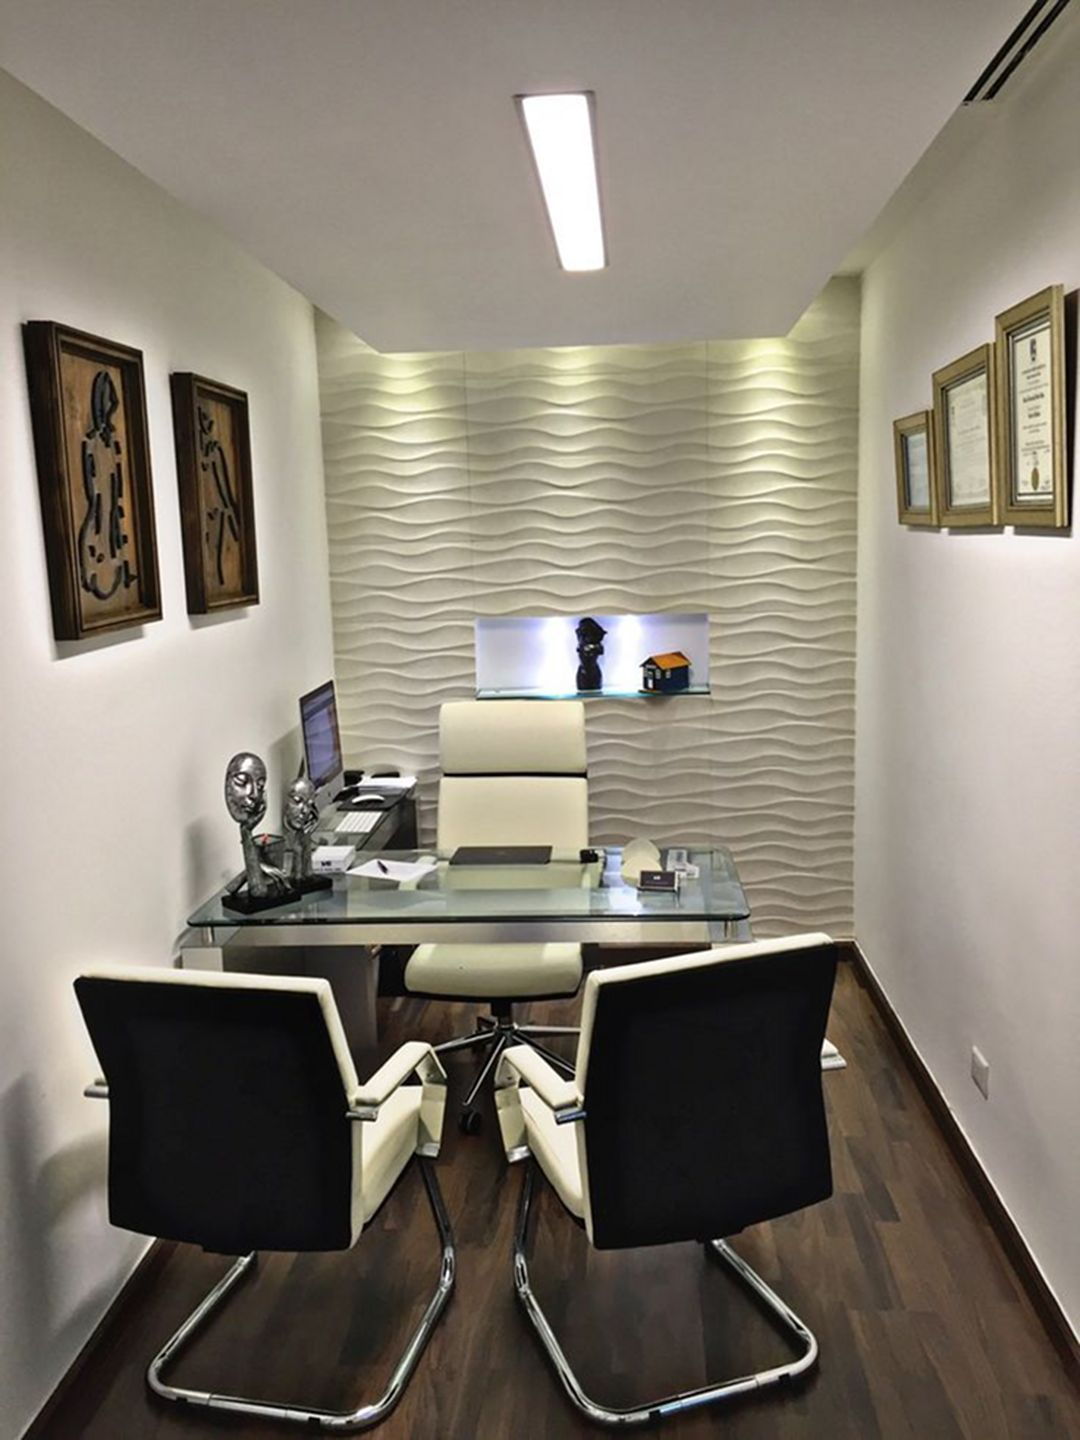 35 Awesome Small Home Work Office Decorating Ideas Small Office